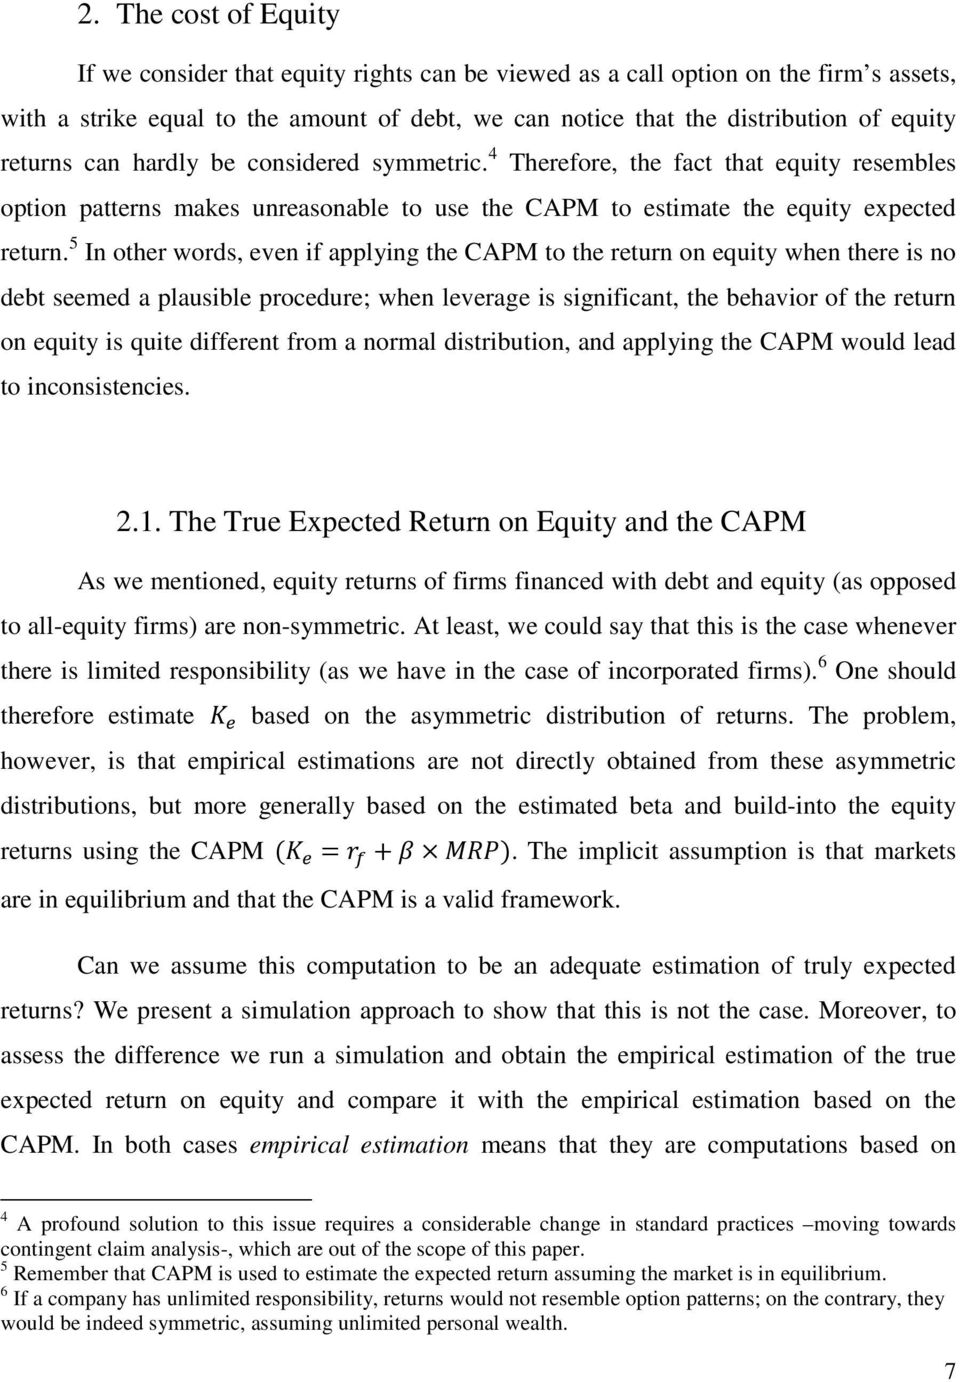 5 In other words, even if applying the CAPM to the return on equity when there is no debt seemed a plausible procedure; when leverage is significant, the behavior of the return on equity is quite